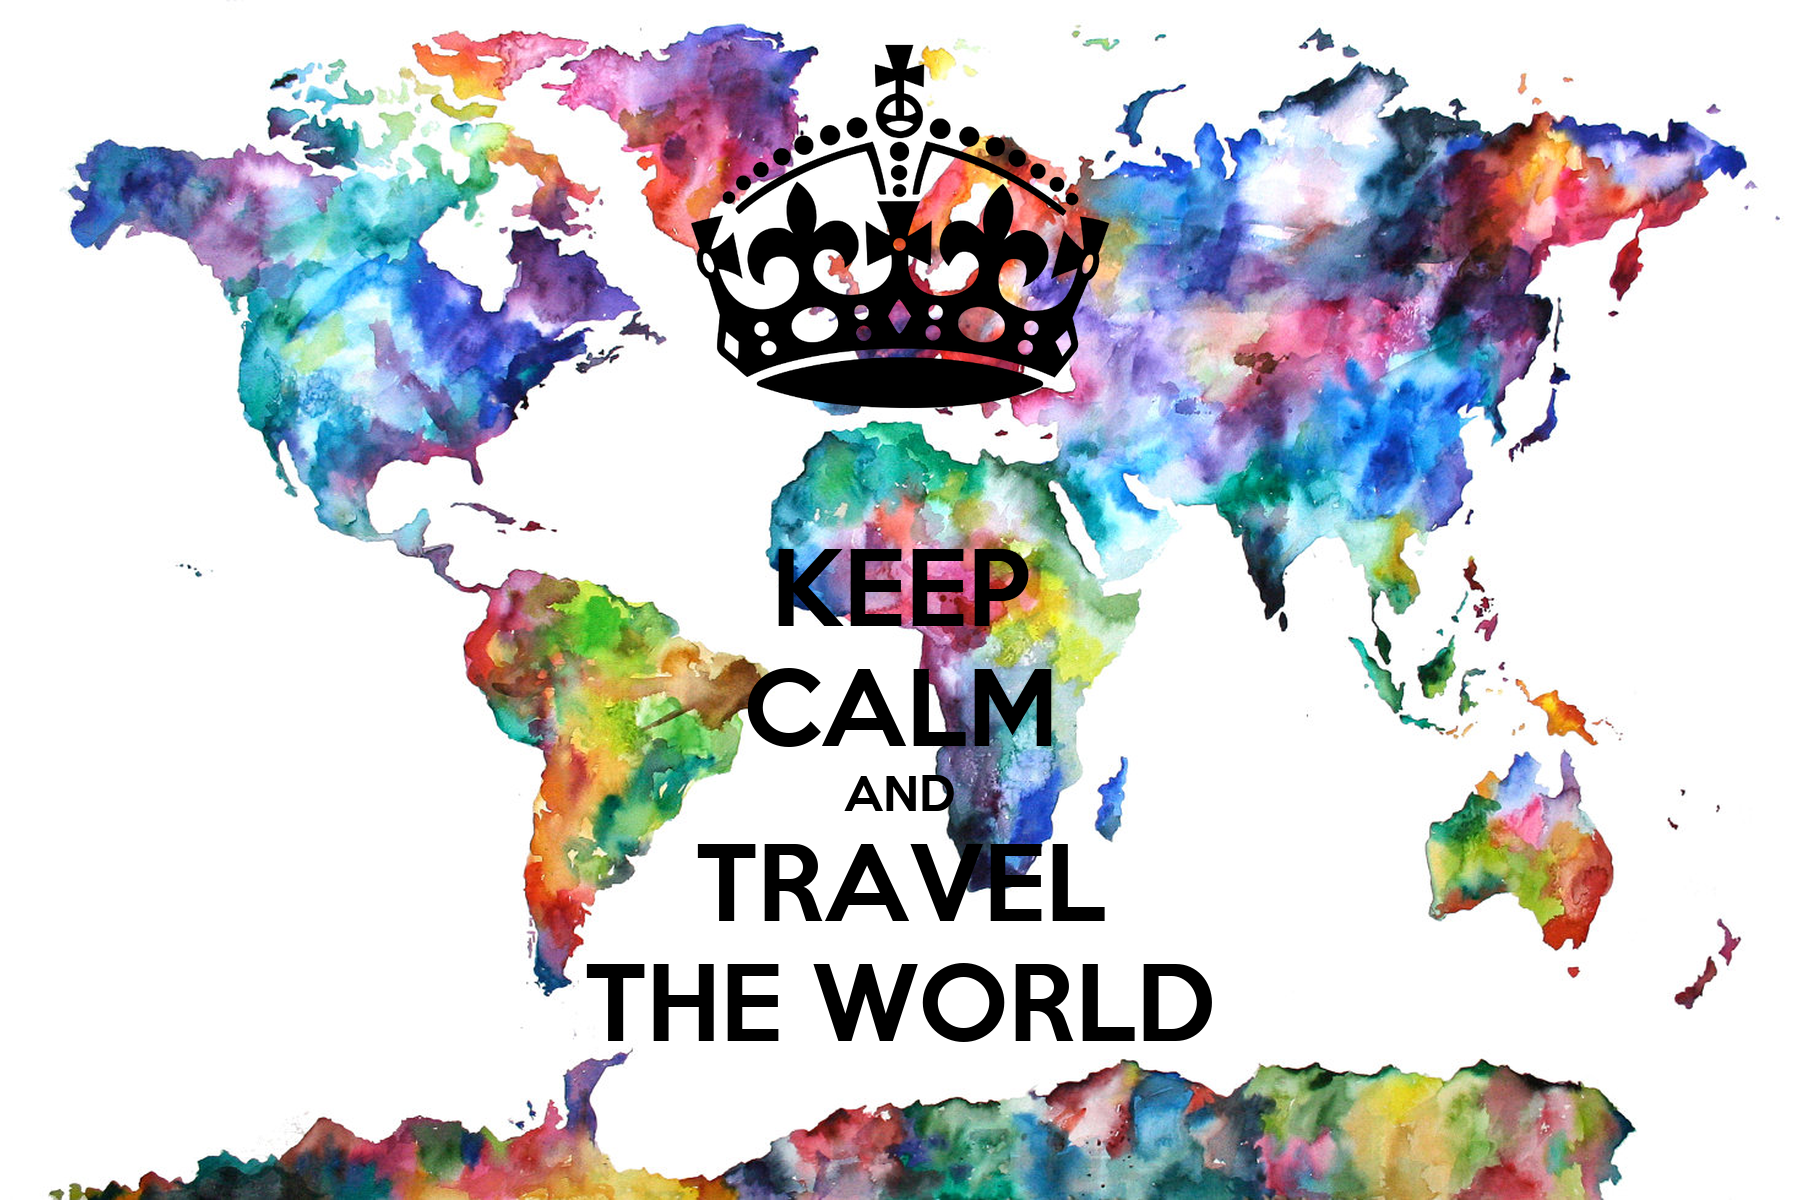 Keep calm and travel the world poster simon keep calm for Cruise around the world